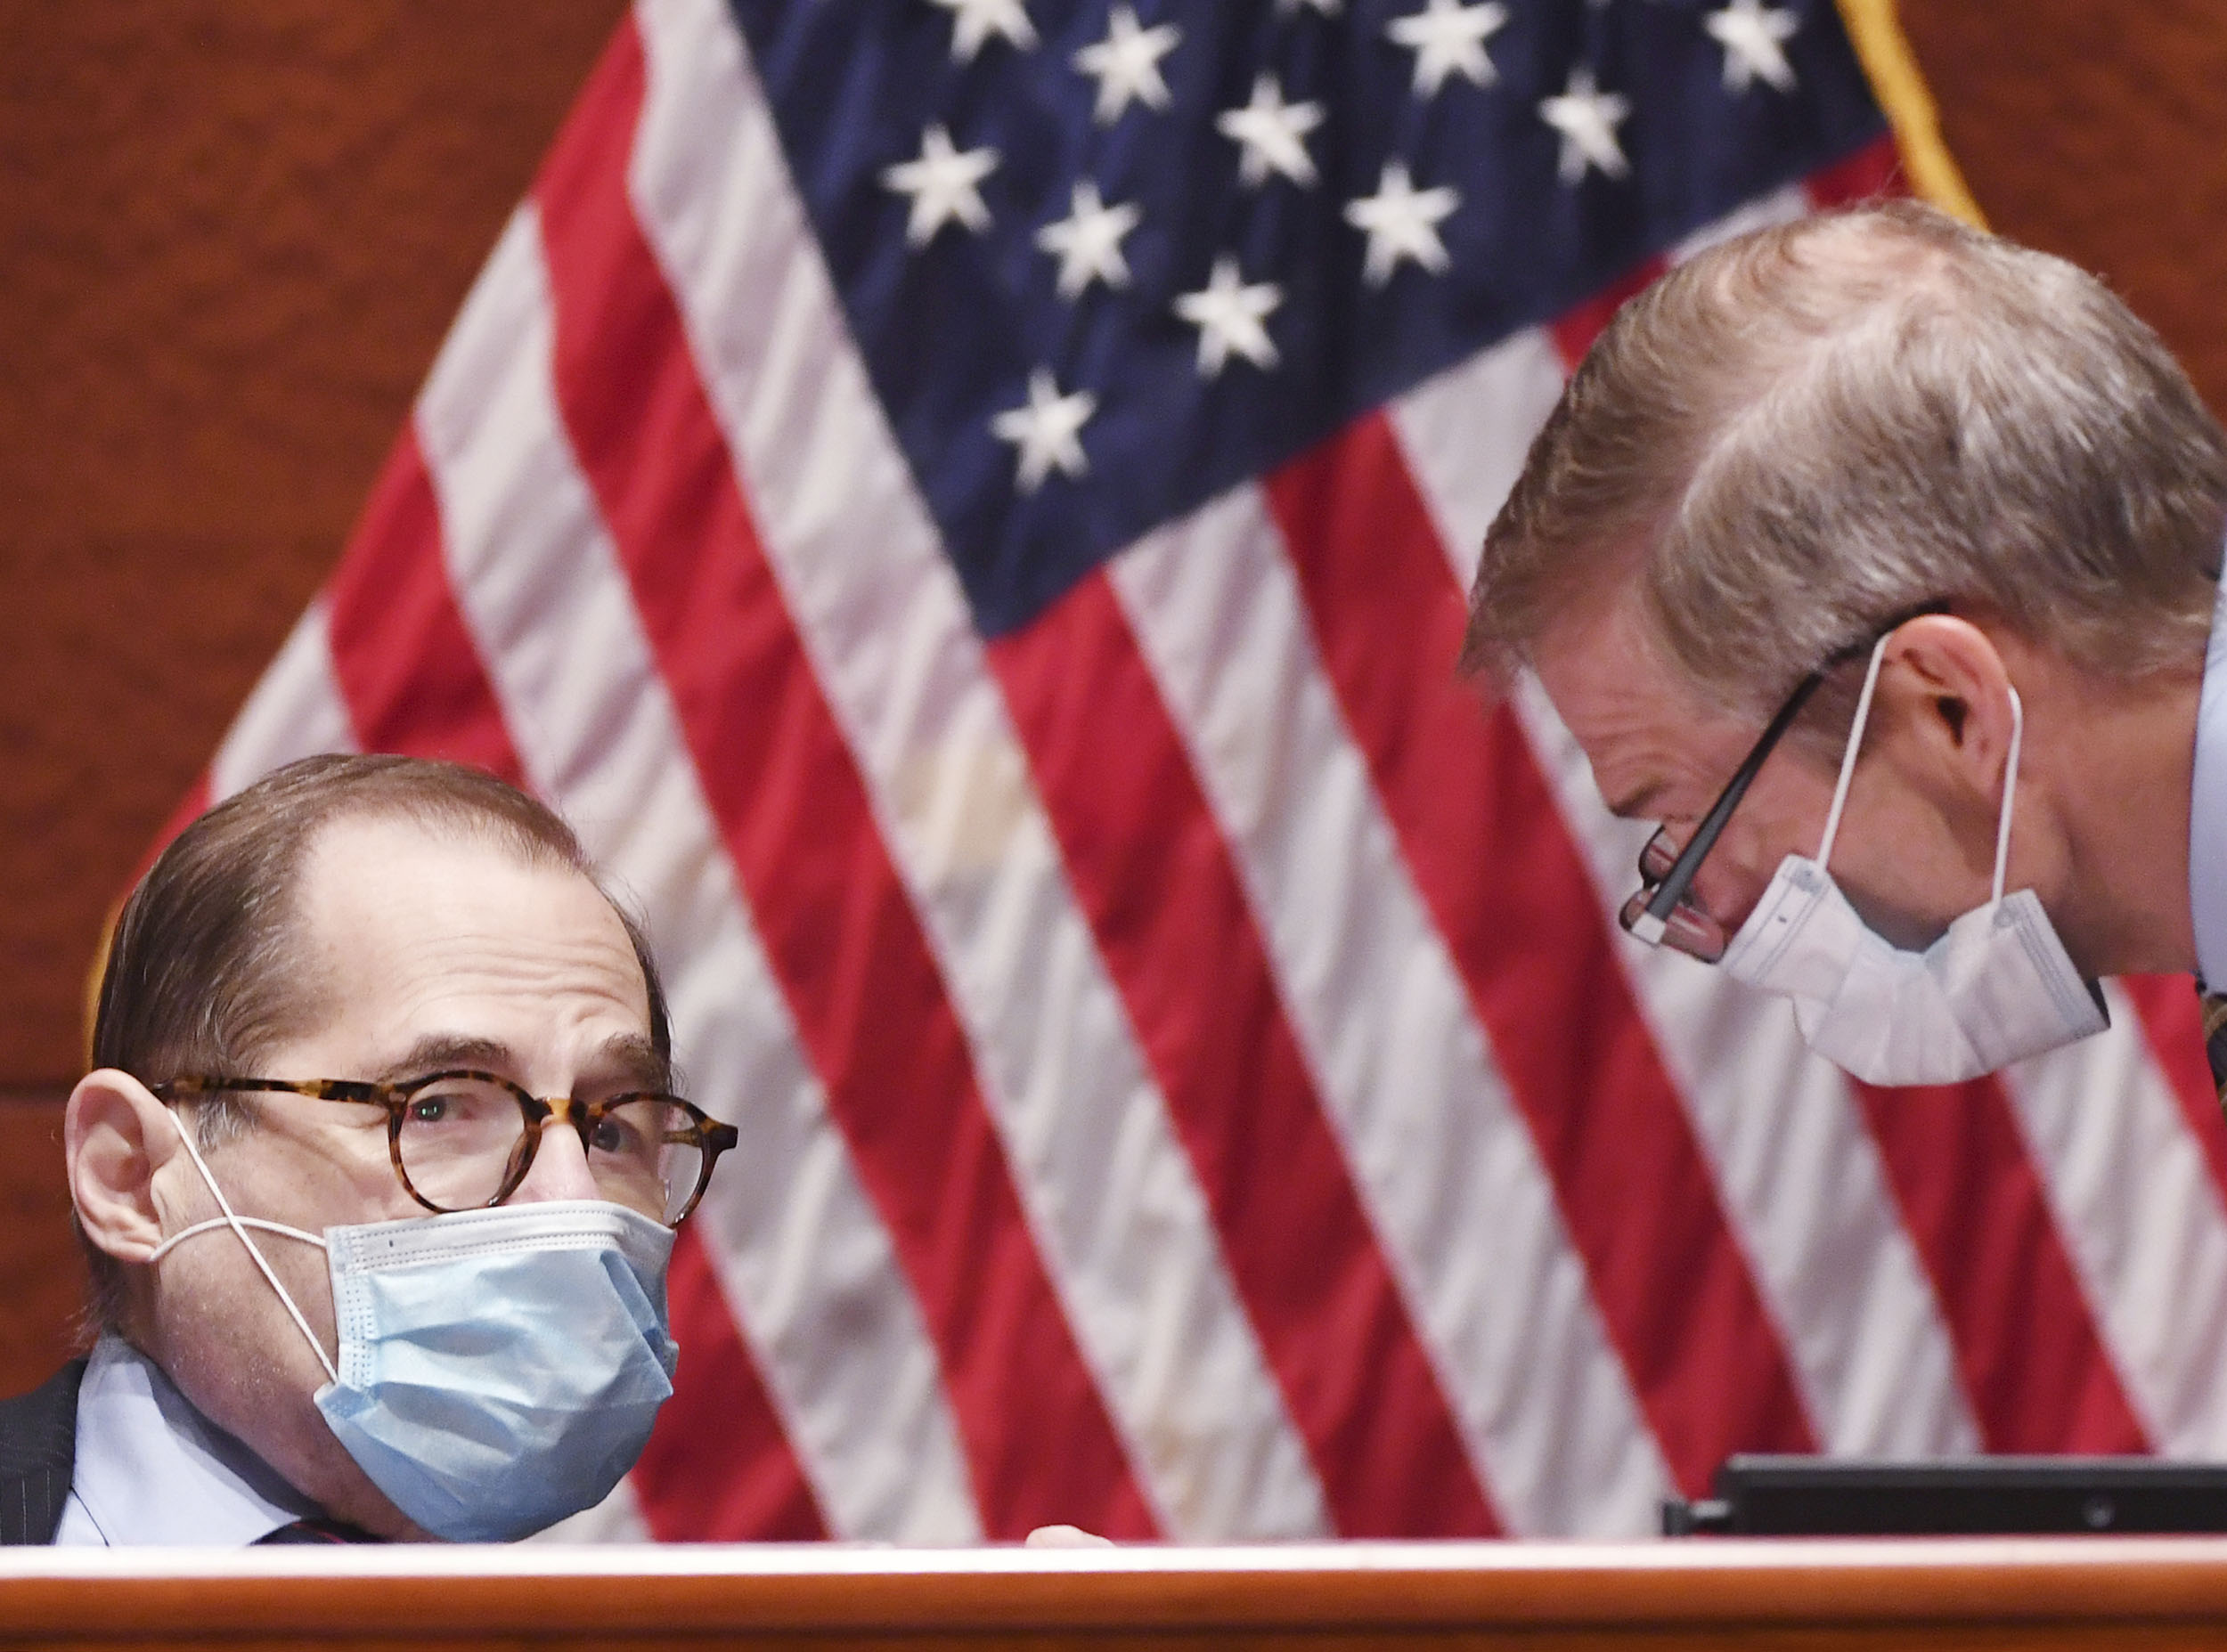 Jerry Nadler, D-N.Y., speaks with Rep. Jim Jordan, R-Ohio, during a House Judiciary Committee markup of the Justice in Policing Act of 2020 on Capitol Hill in Washington DC, on Wednesday, June 17.